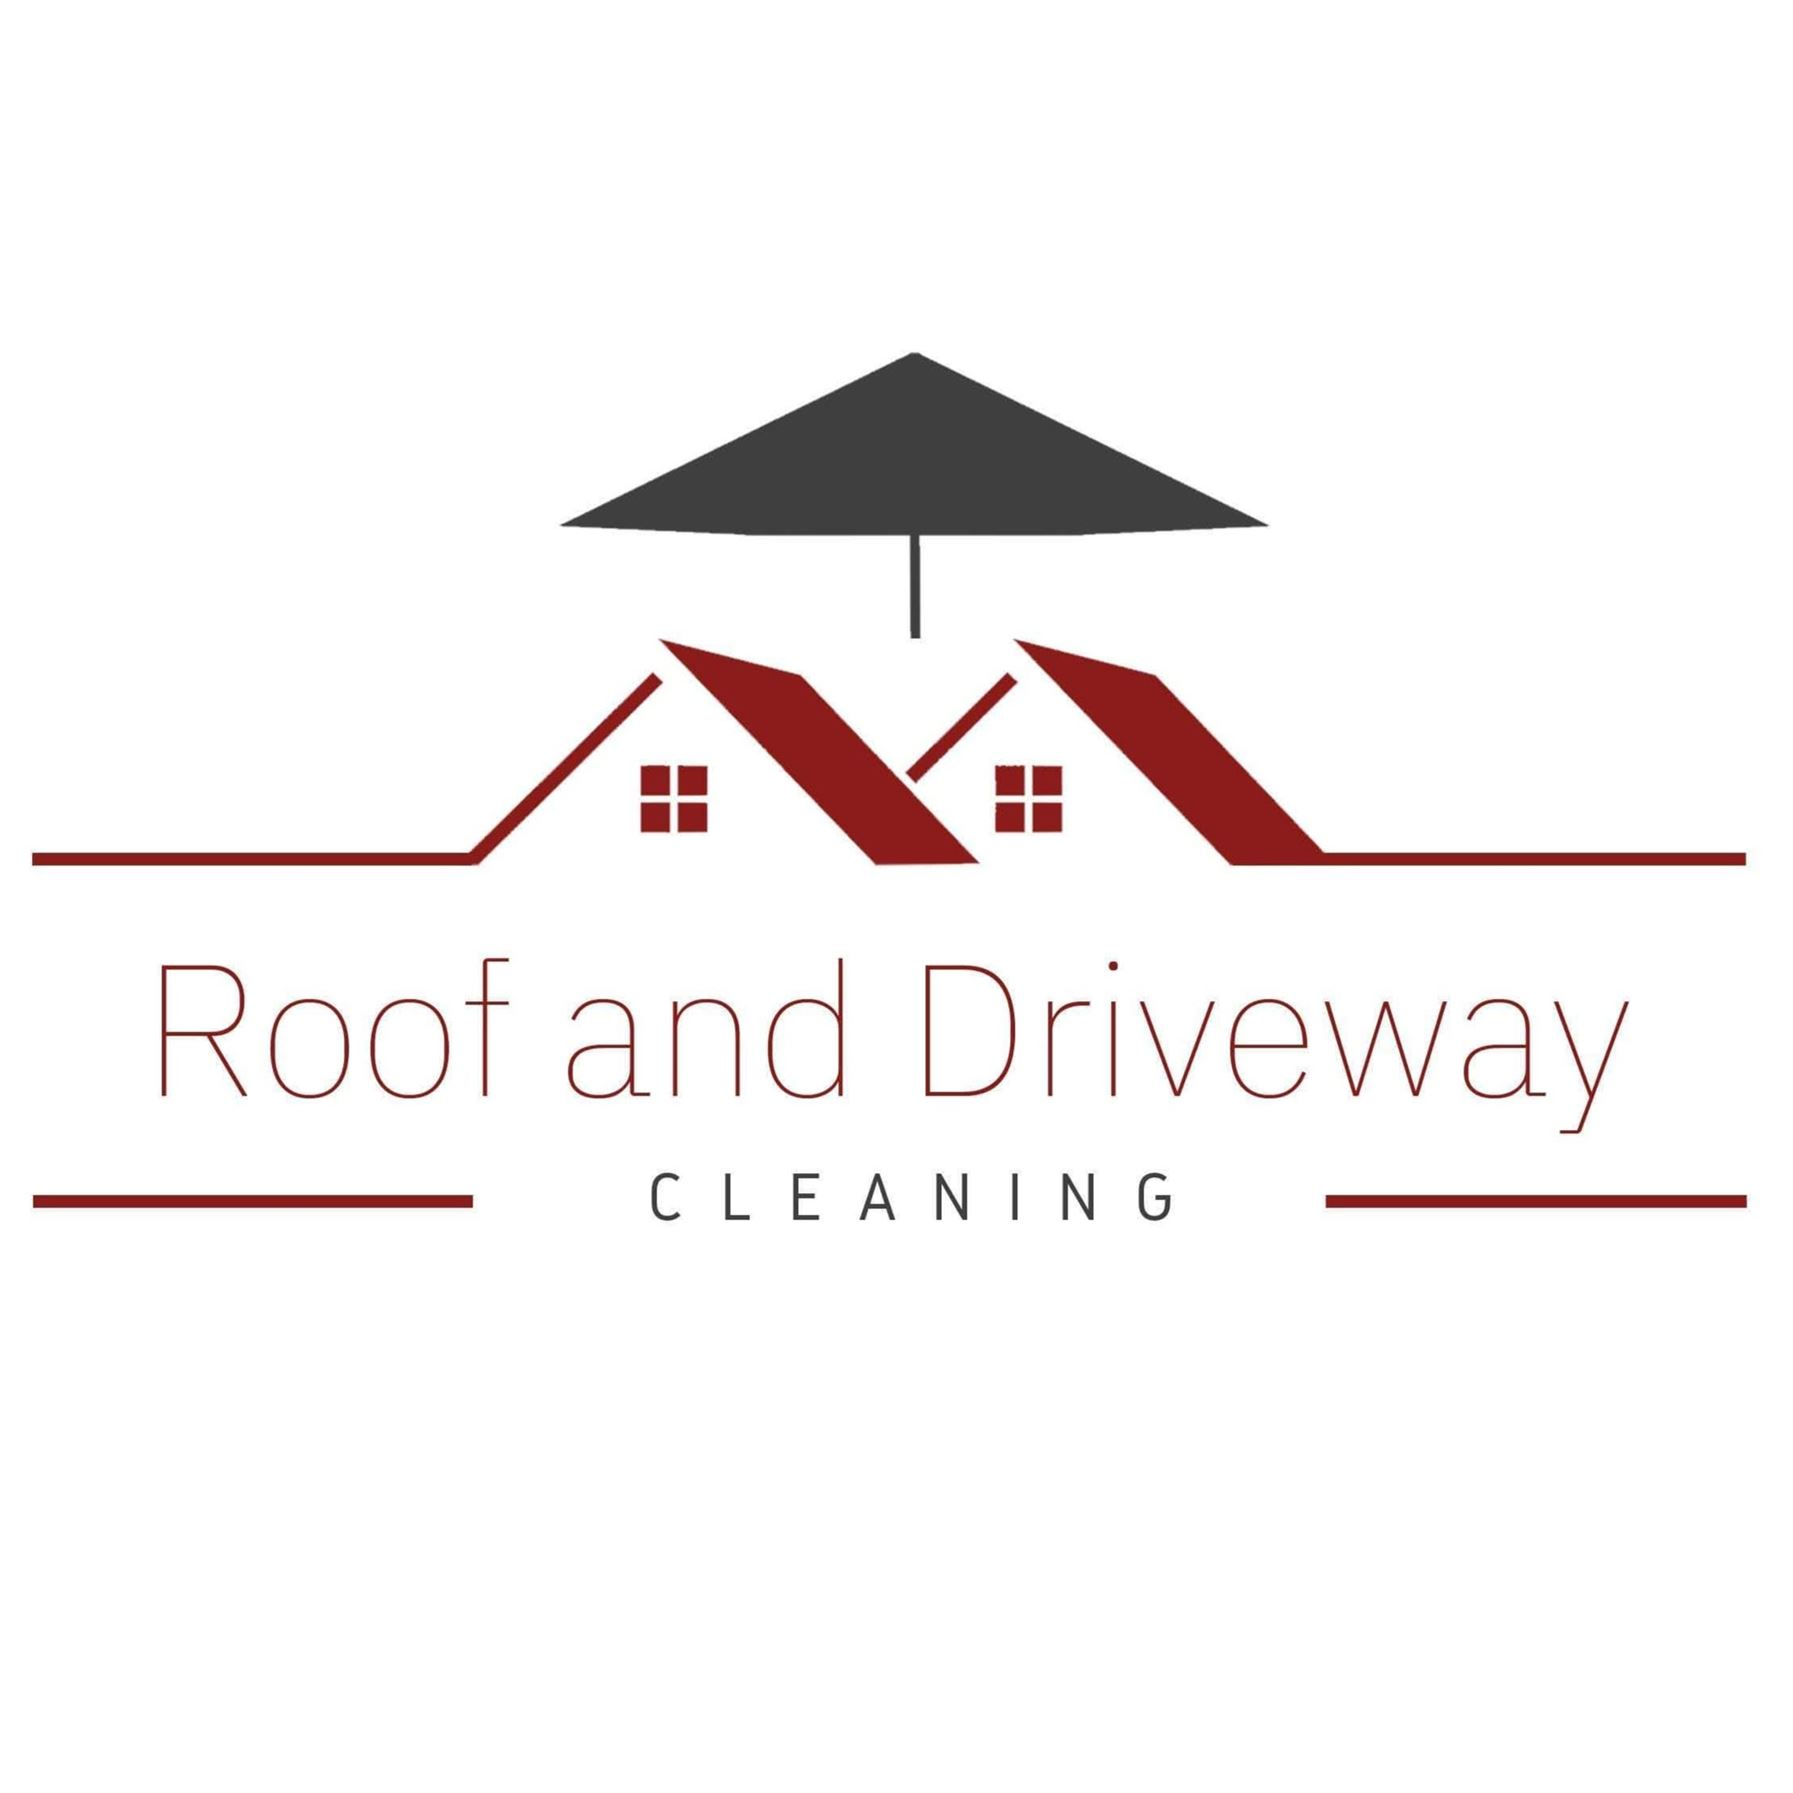 Roof & Driveway Cleaning Margate Offers Roof Tile Cleaning Services to Residents of Margate, England